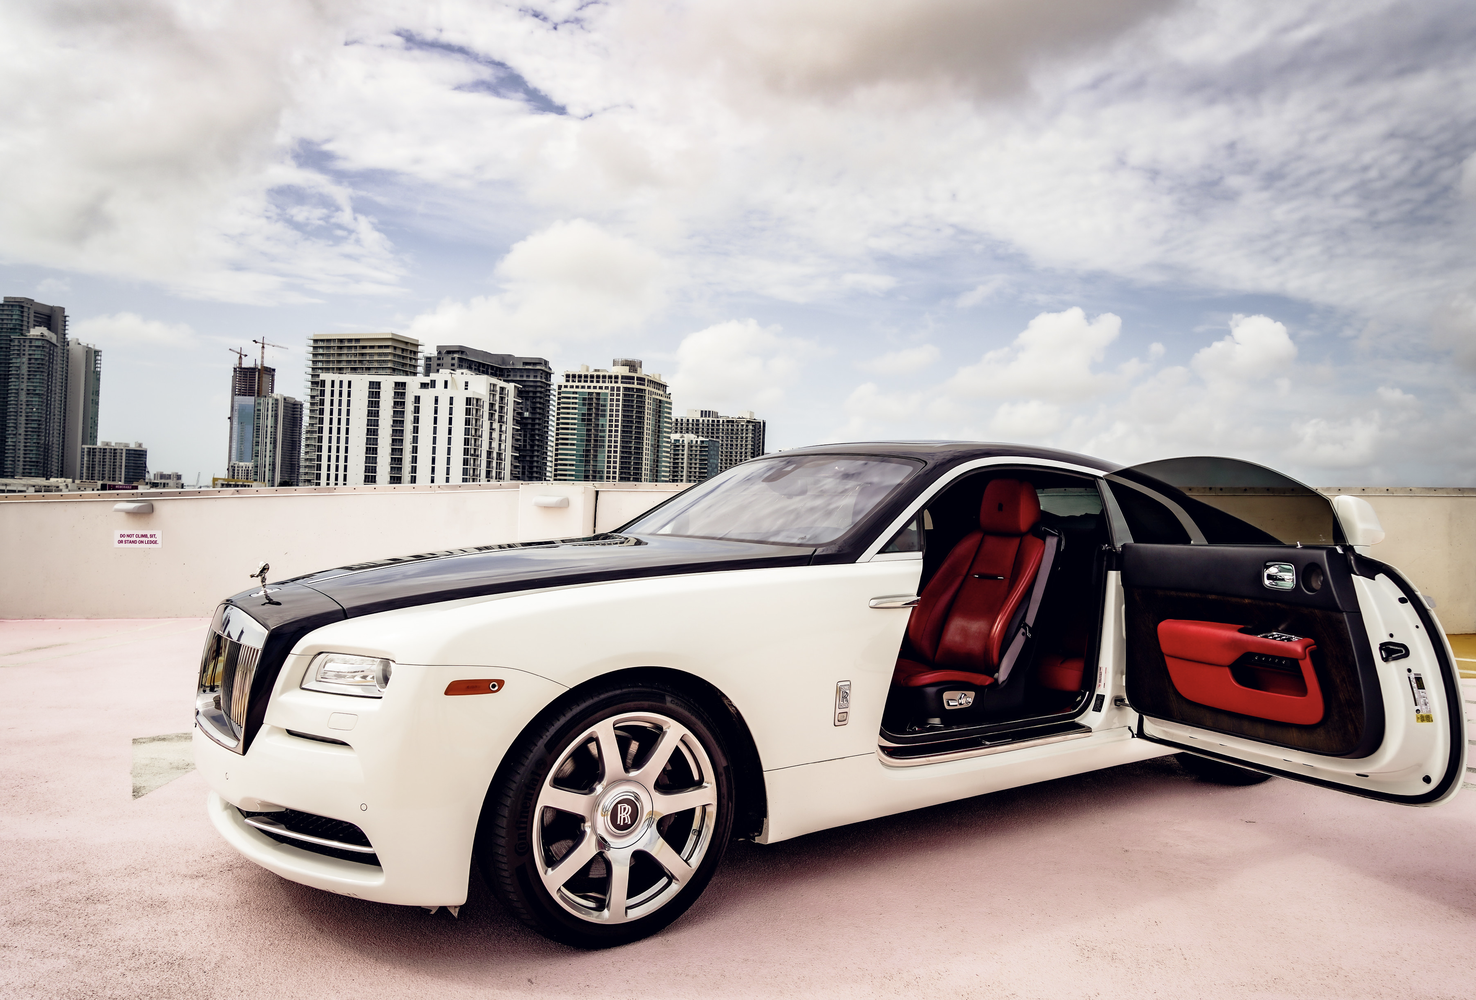 Image #6 of our  Rolls Royce Wraith    In Miami Fort Lauderdale Palm Beach South Florida